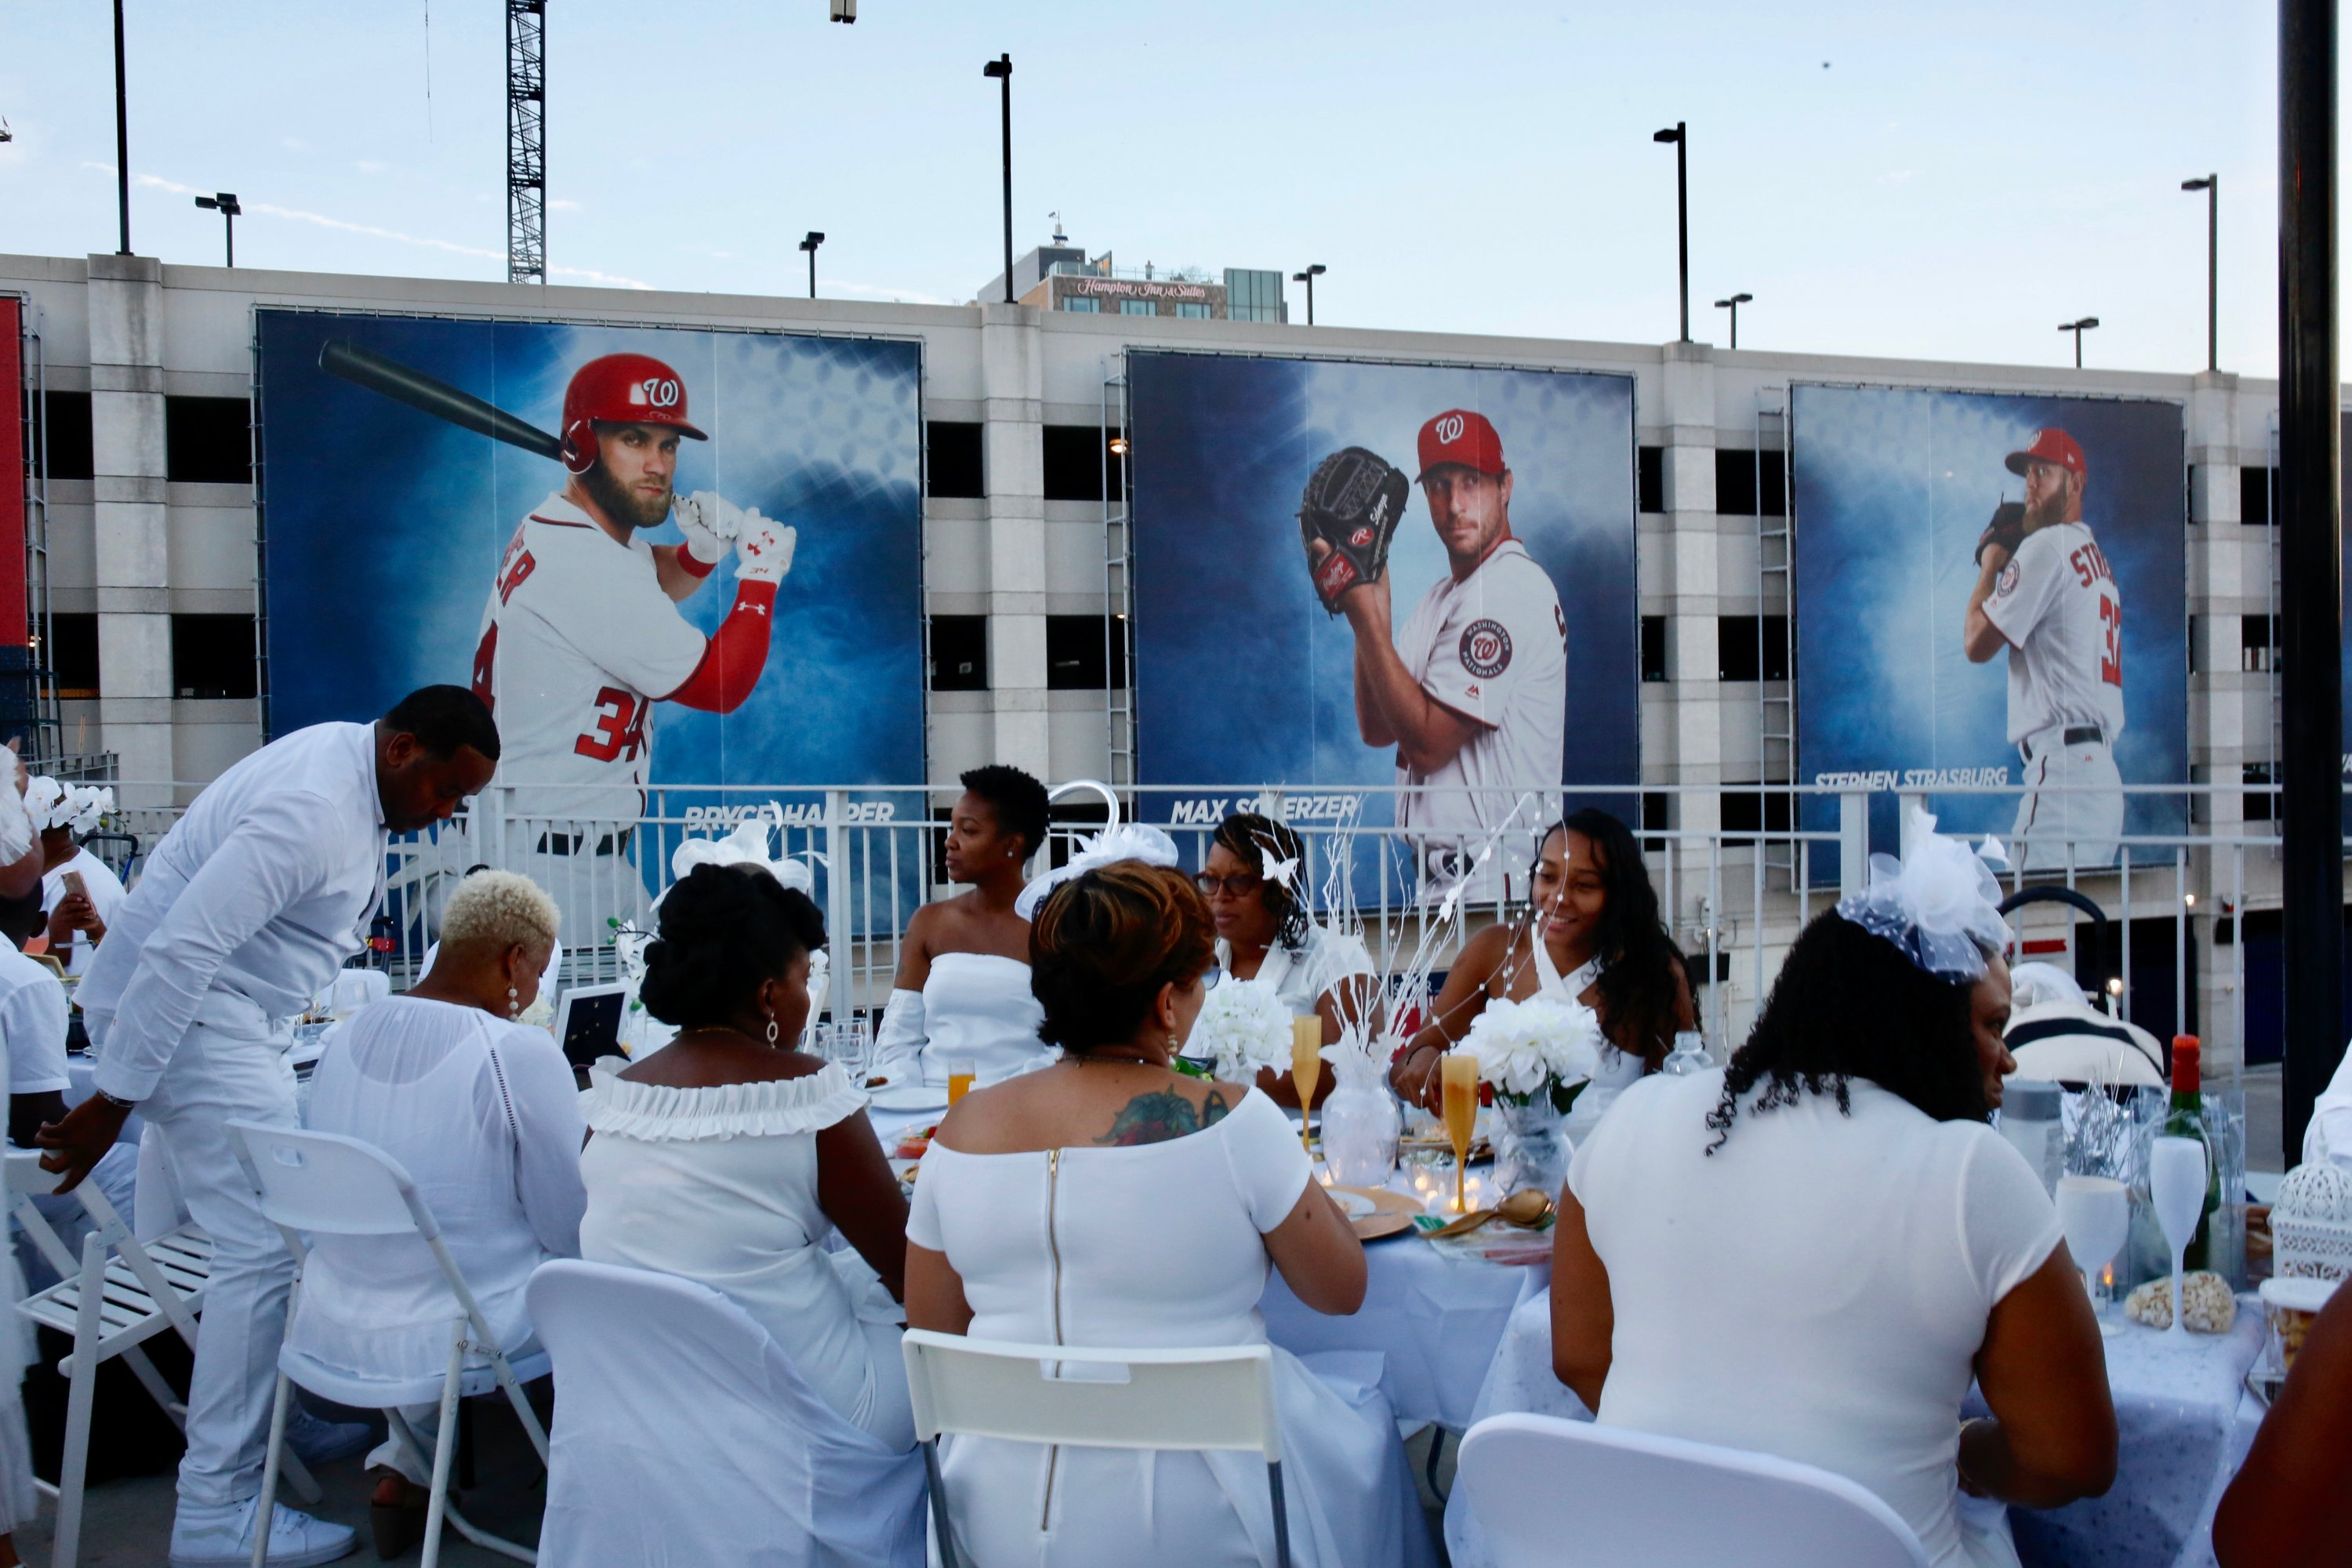 DC Diner en Blanc 2018. Photo by Evy Mages.